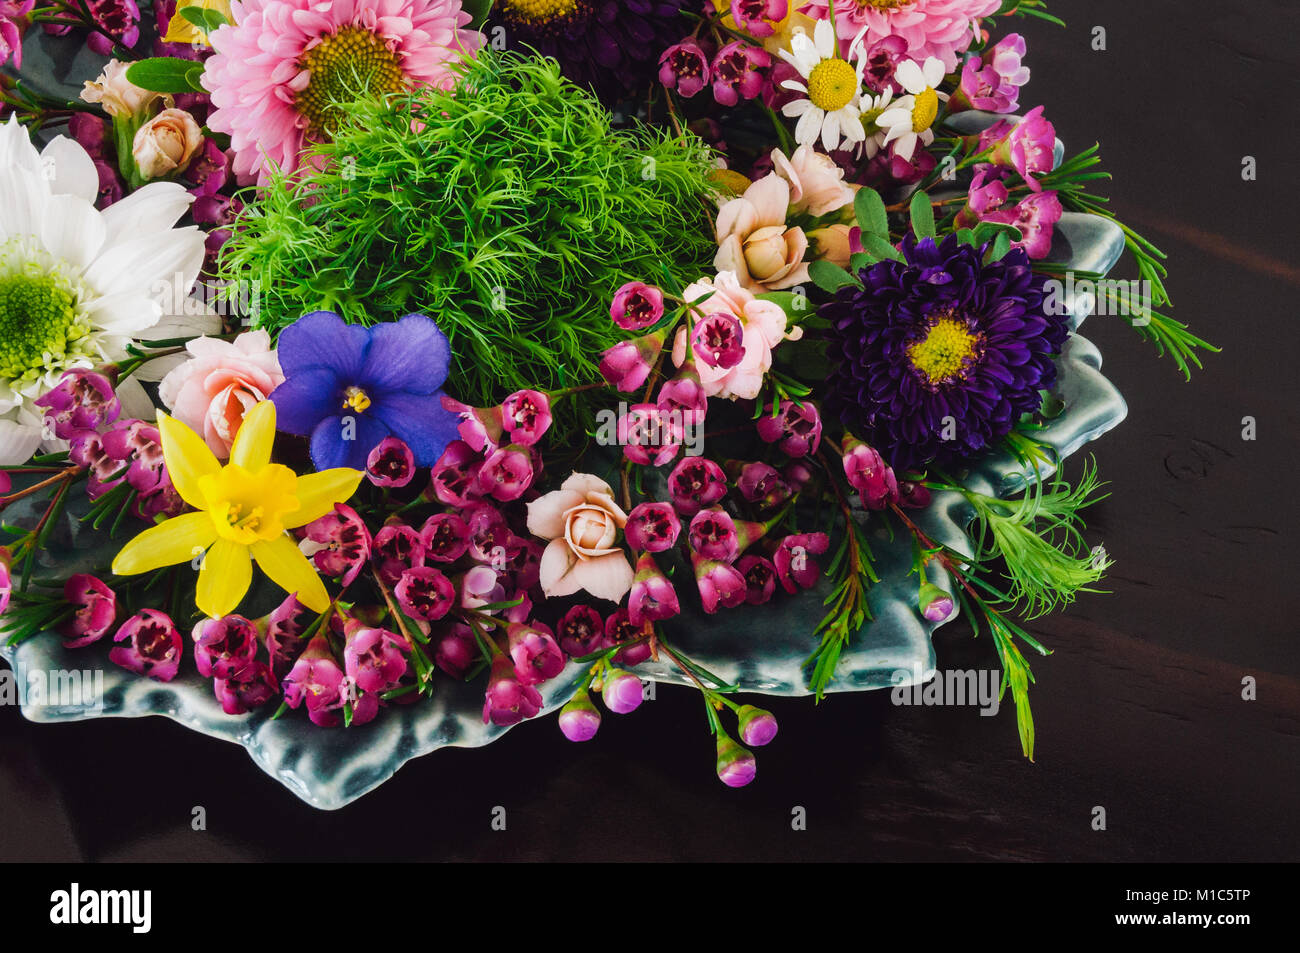 Assorted Spring Flowers on Dark Table, including Violets, Dafodils, Chrysanthemums, Waxflowers, Roses, and Chamomile. - Stock Image